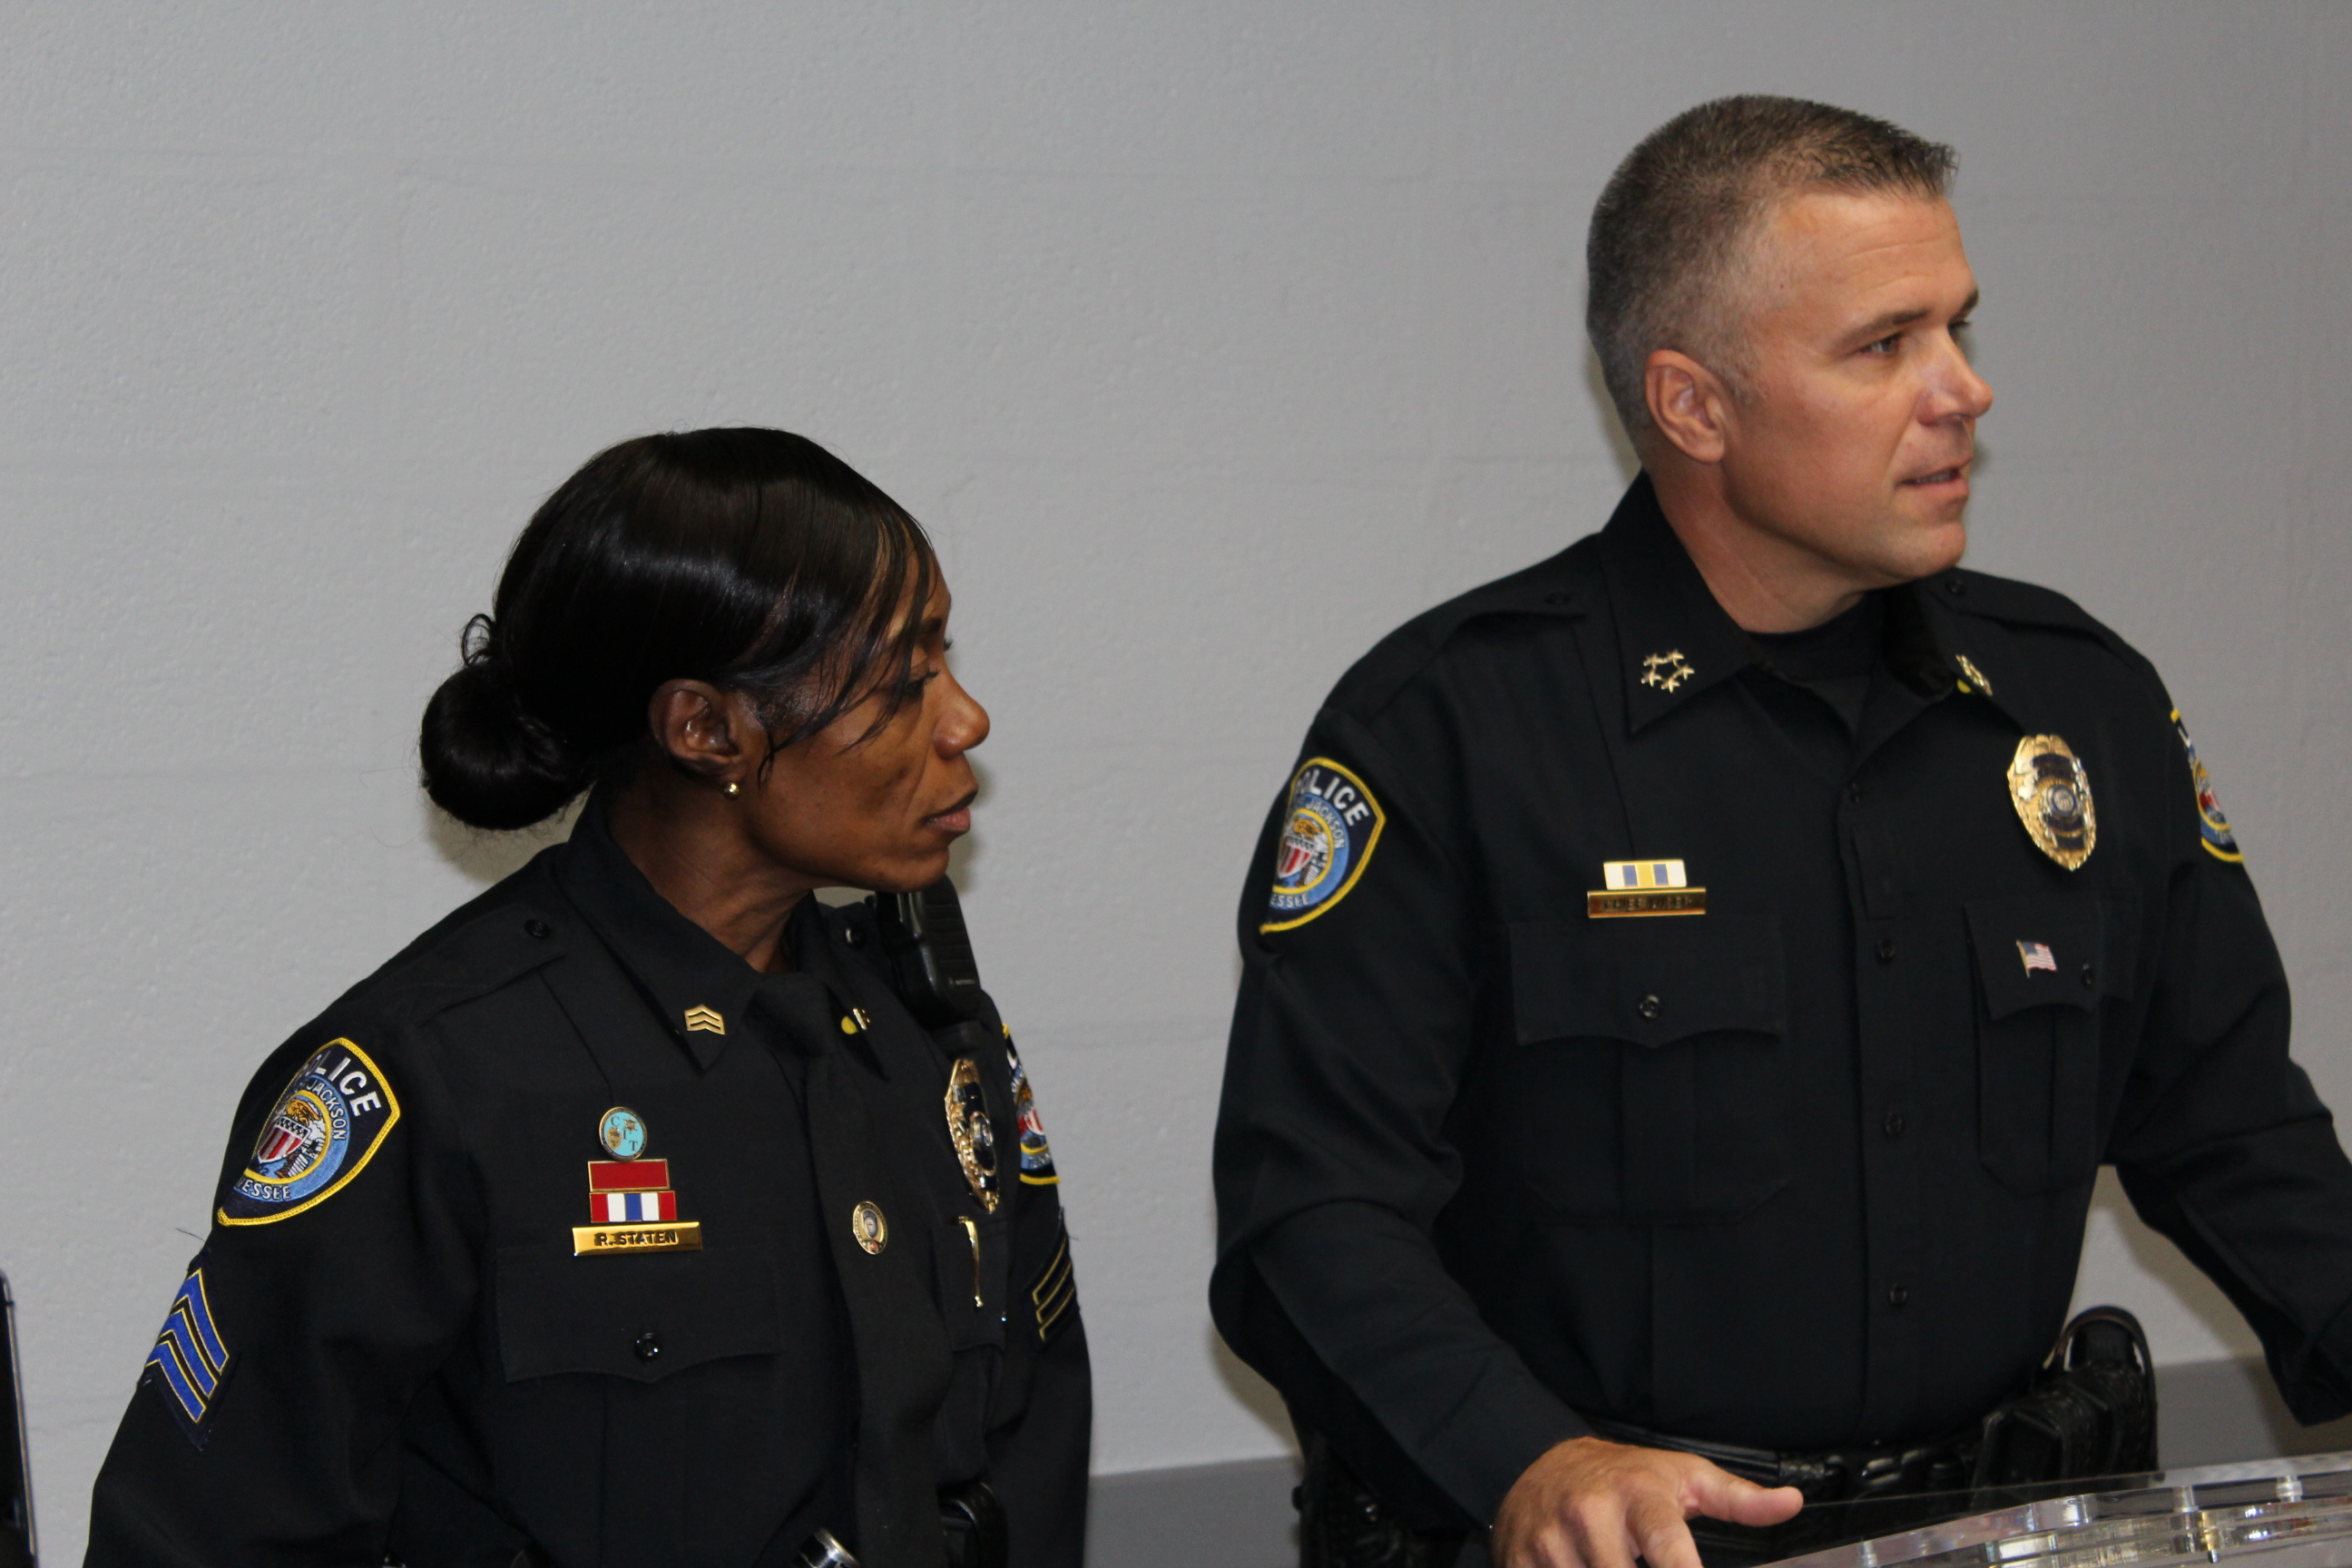 Chief Wiser promotes a Jackson Police Sergeant to the rank of Lieutenant.